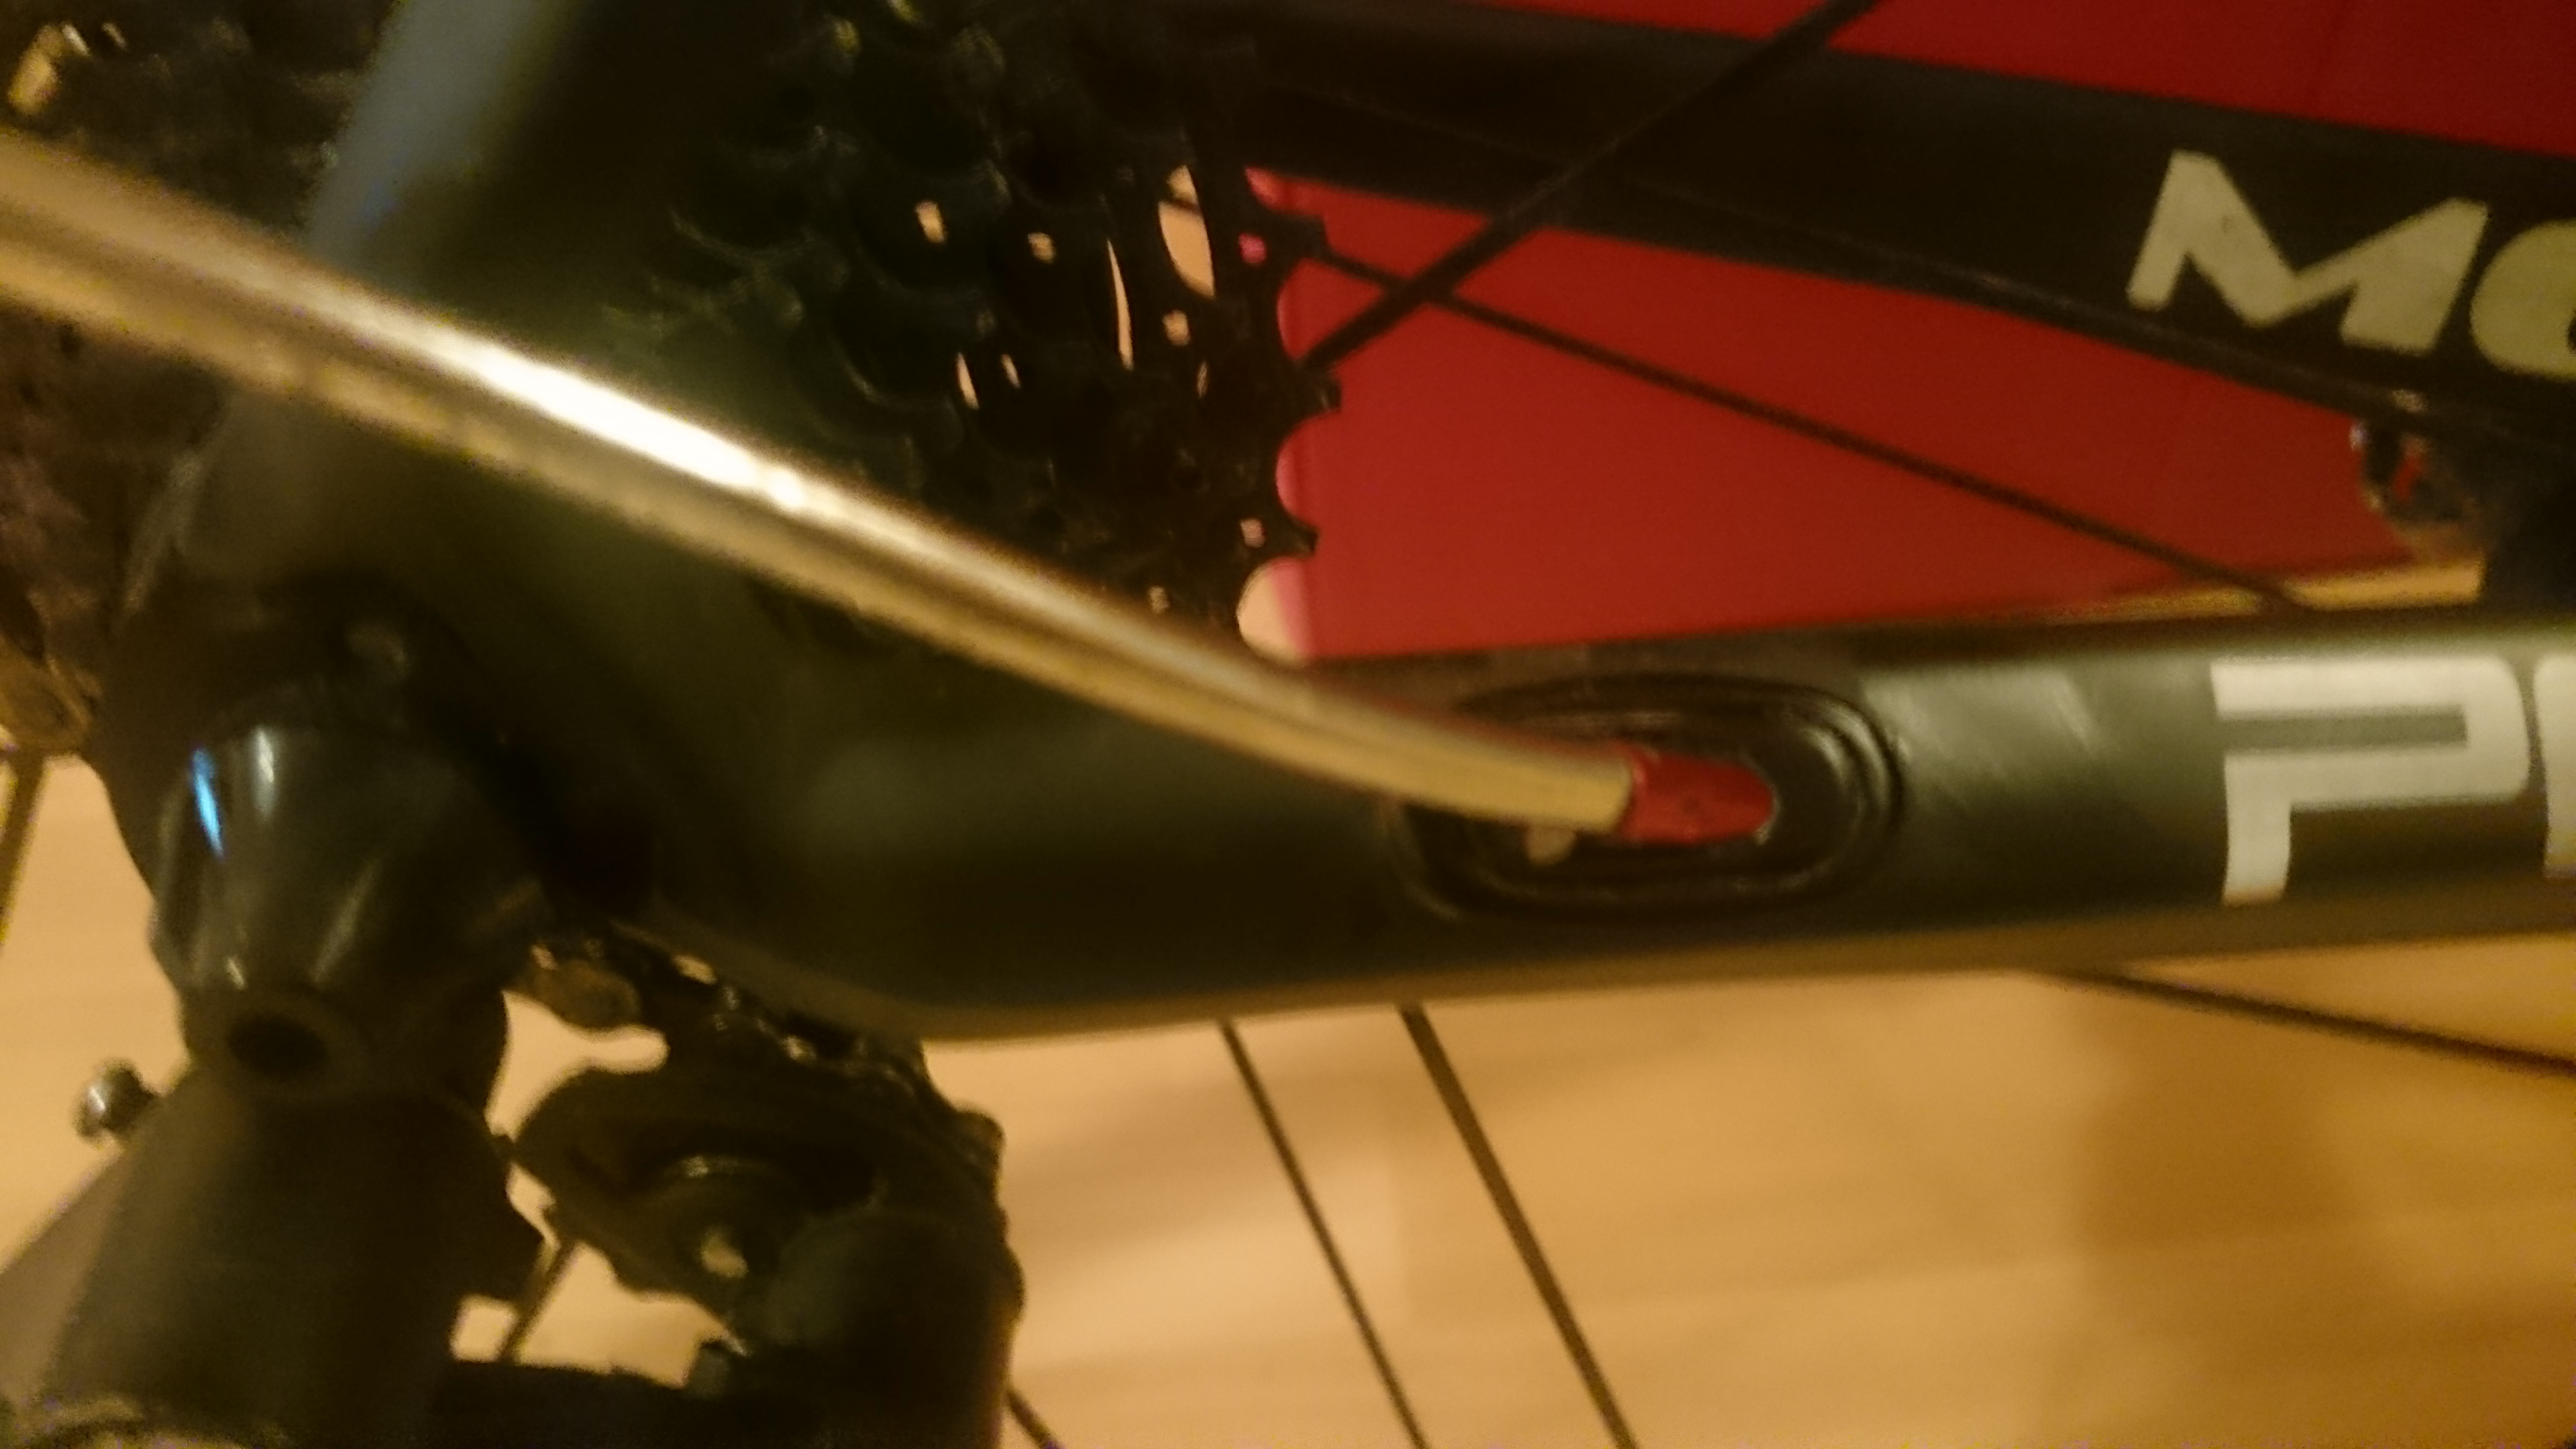 Replacing an internally routed gear cable